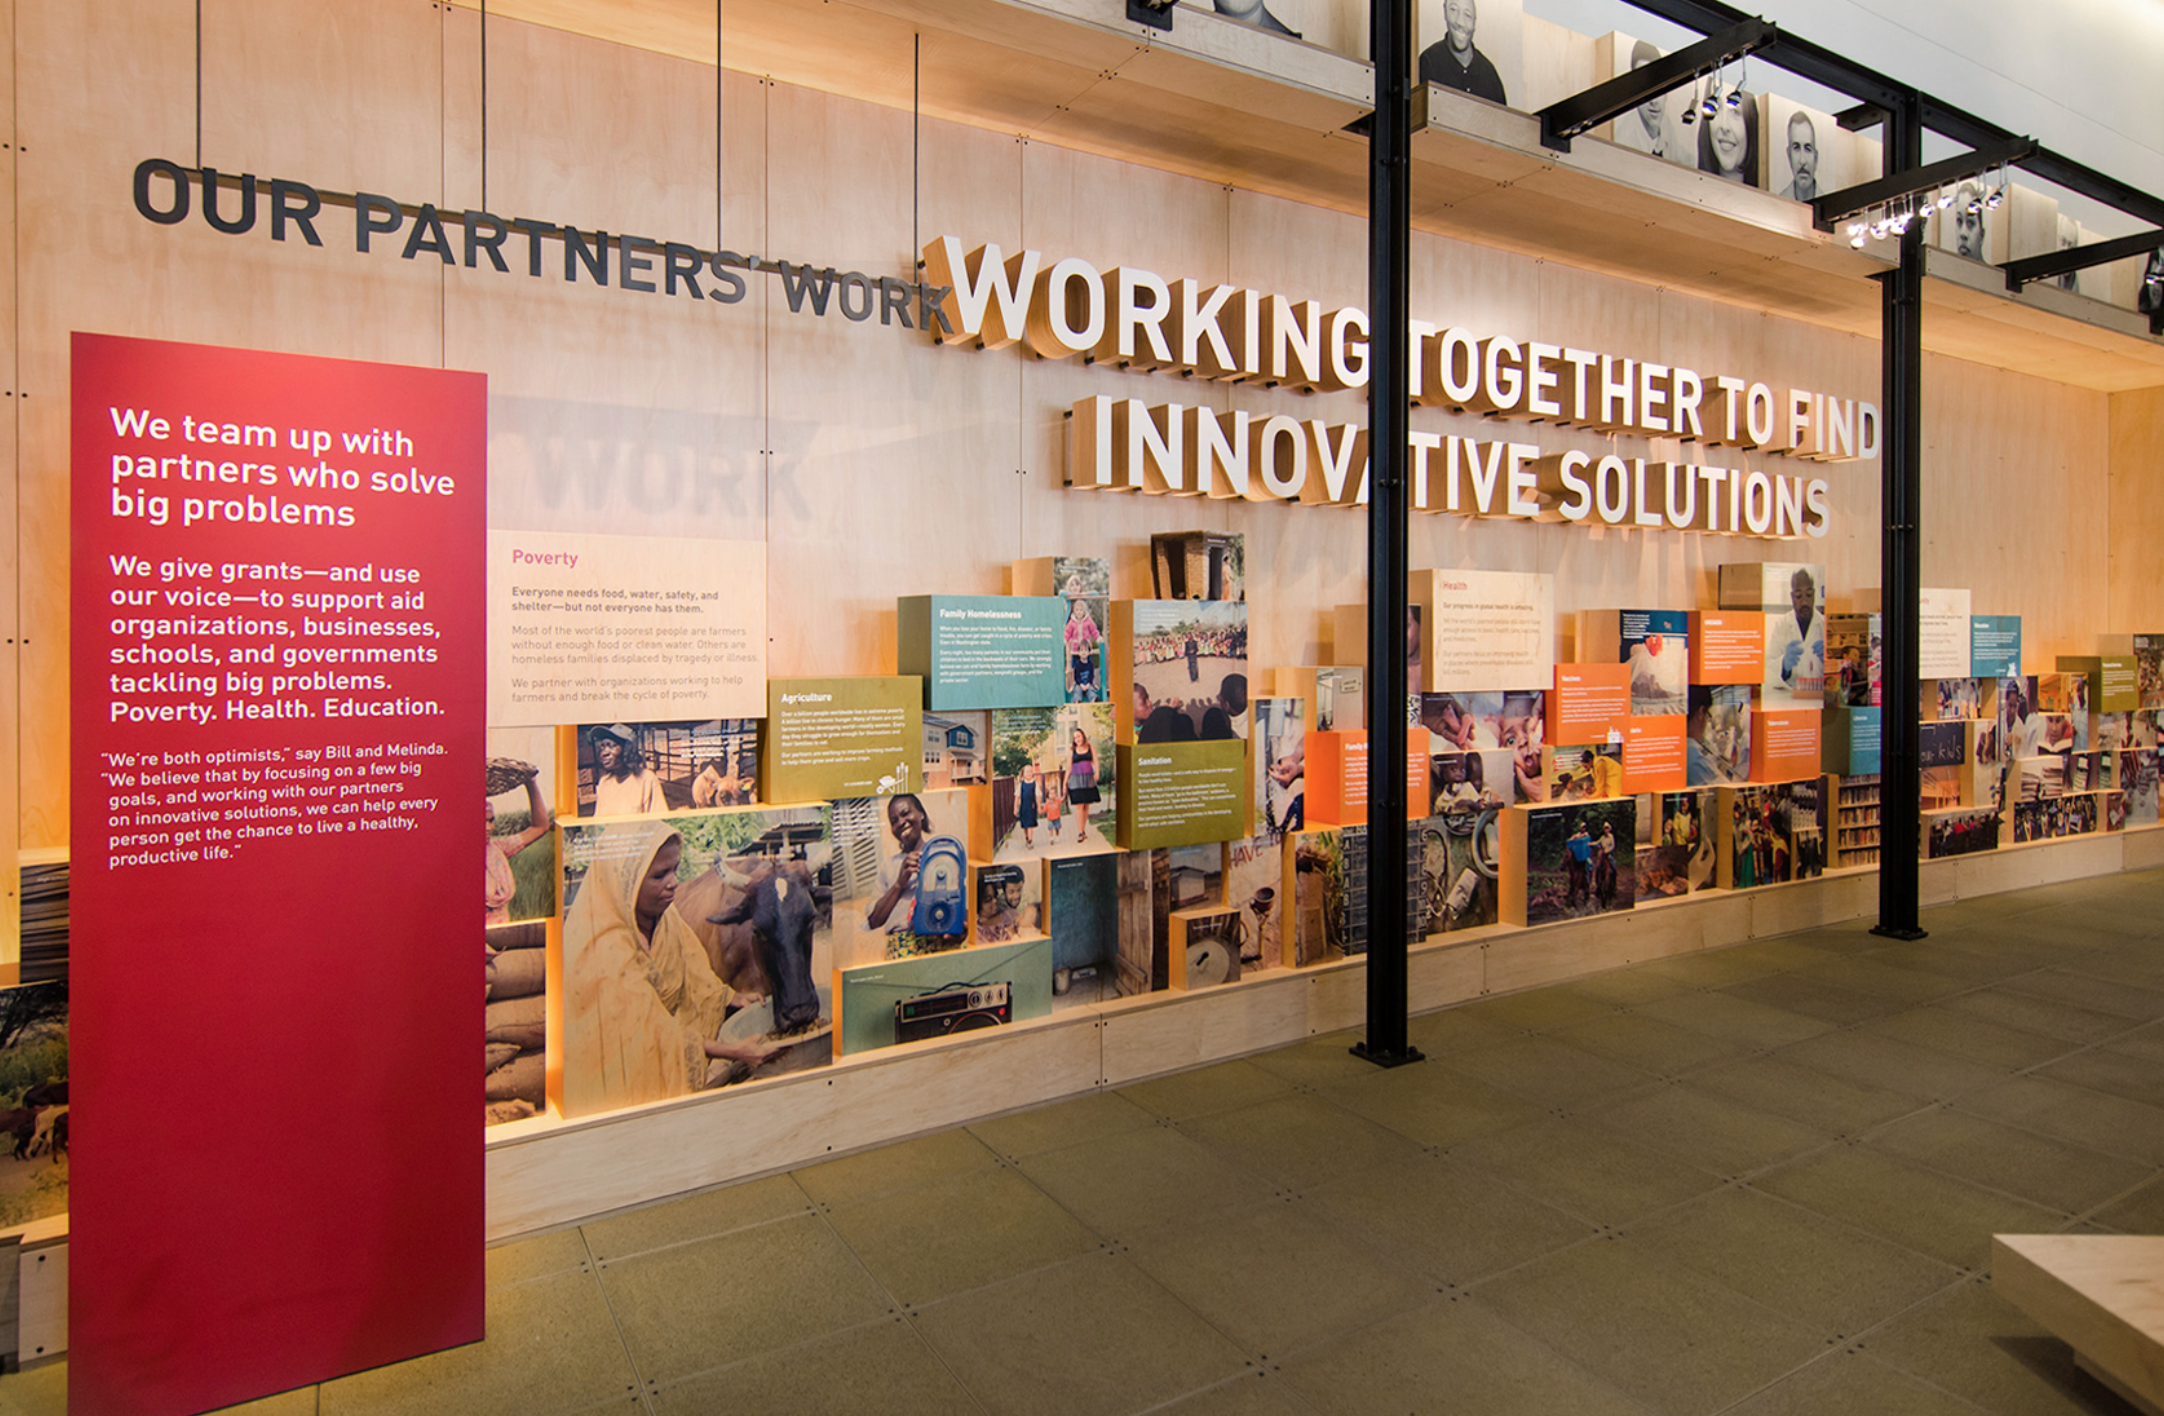 Pin By Yic On Corporate Murals History Wall Museum Exhibition Design Timeline Design